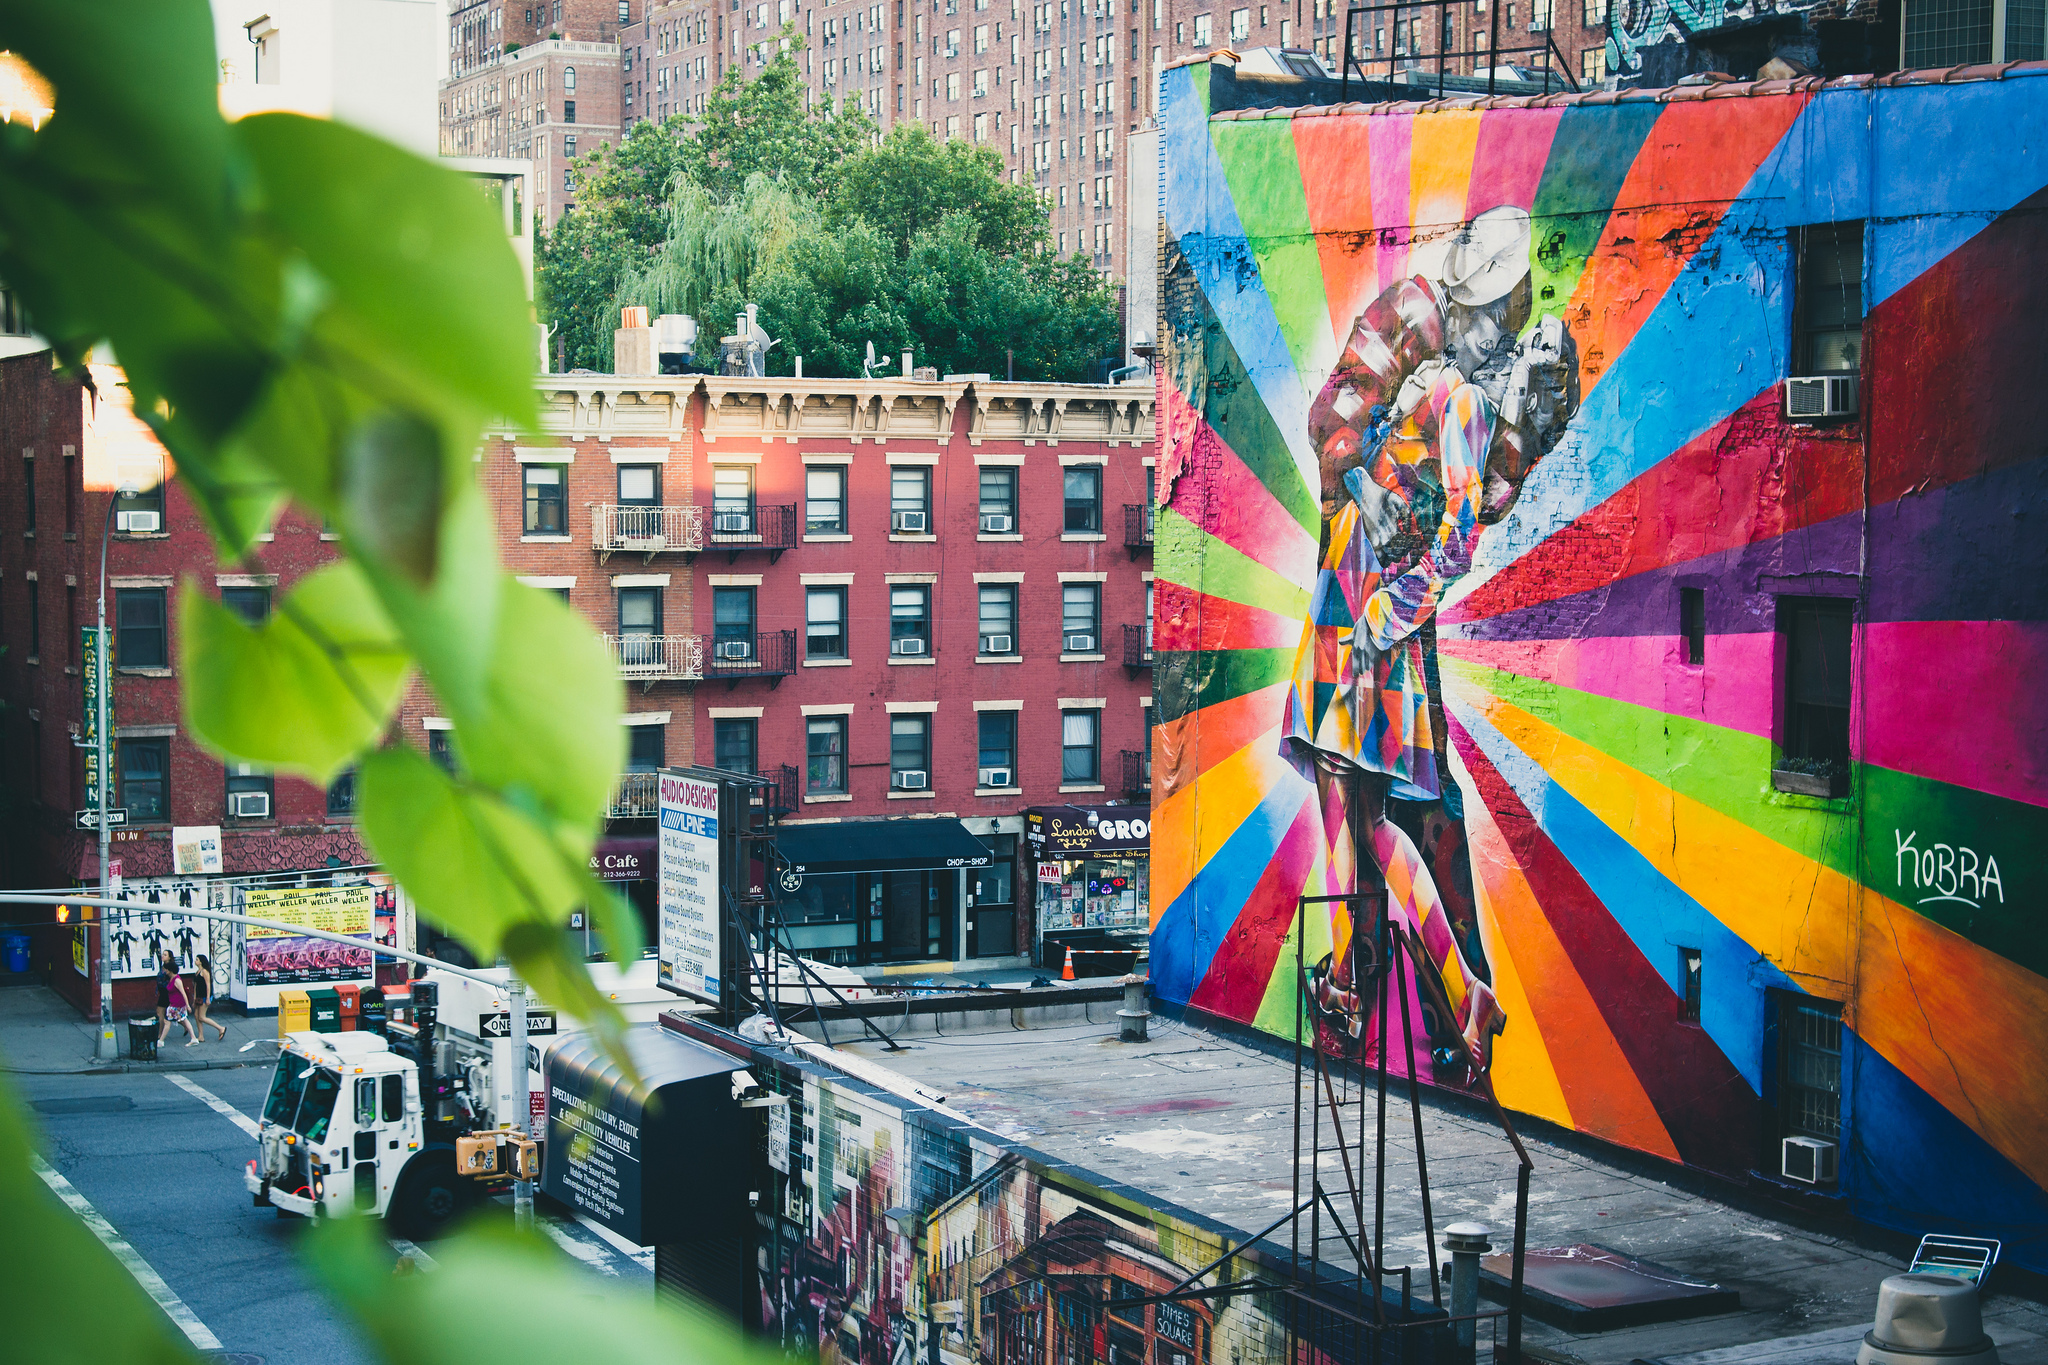 Meatpacking District New York